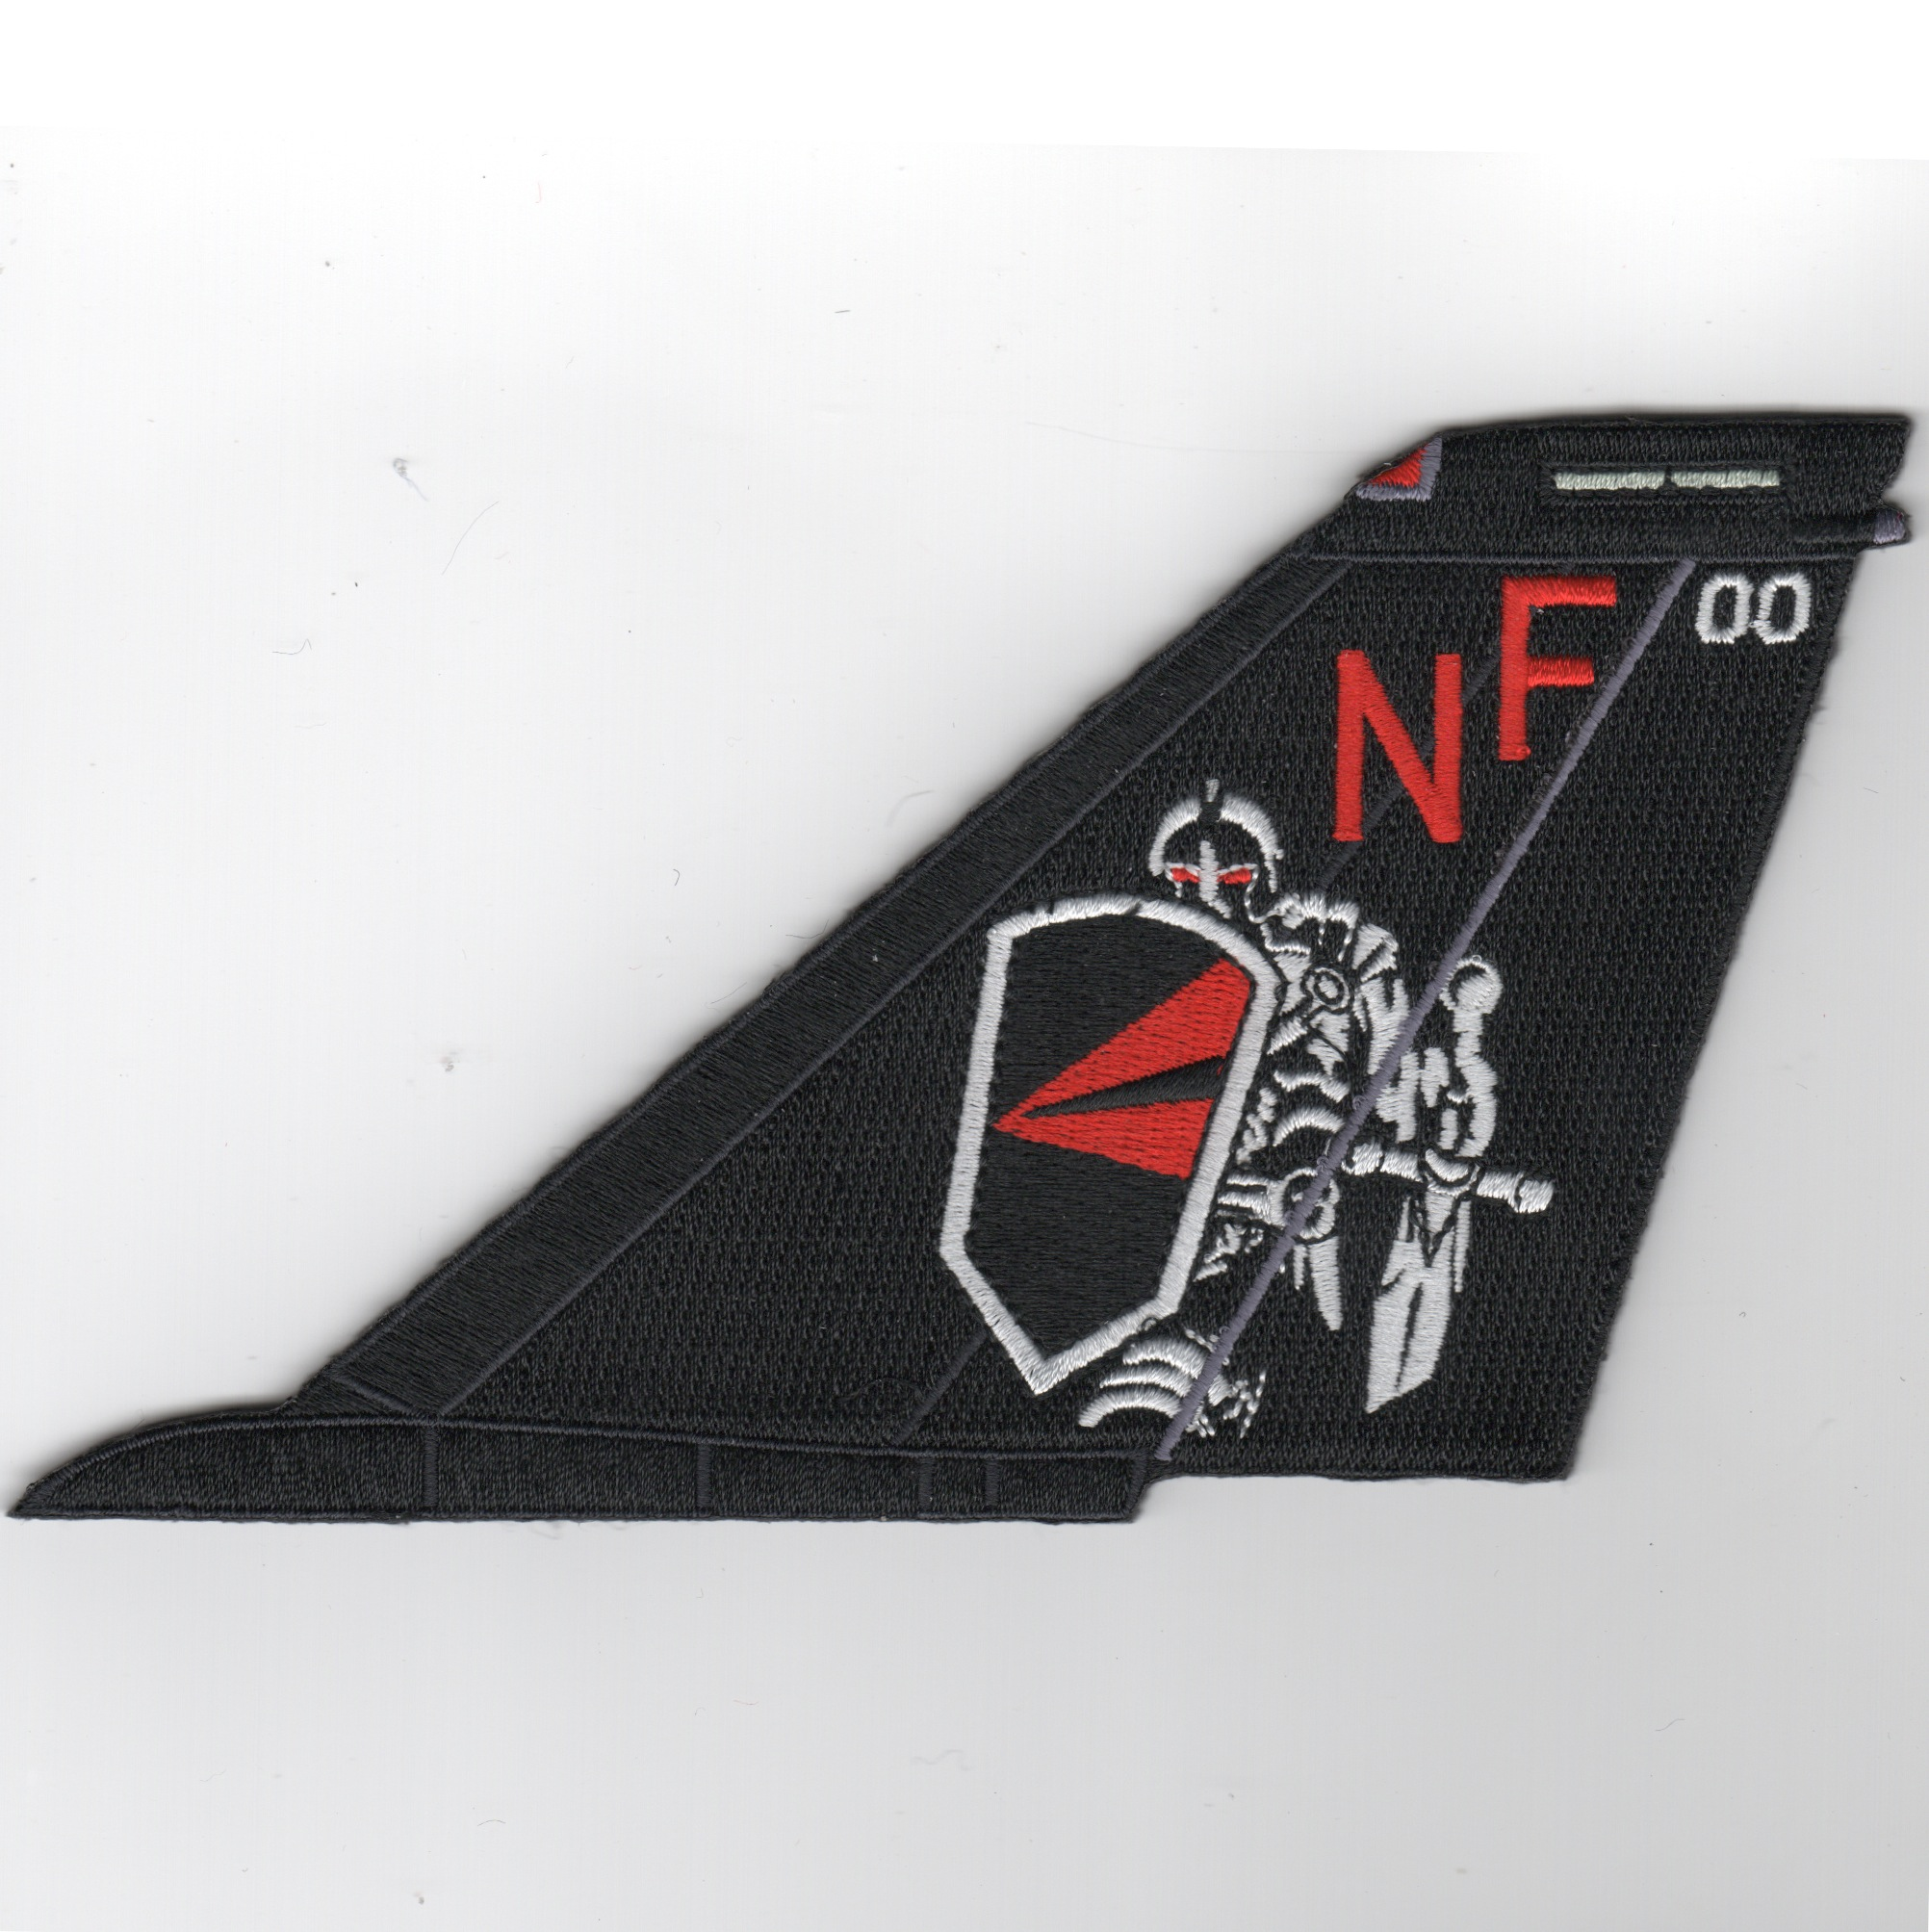 VF-154 F-14 Tailfin (Black/NF/No Text)